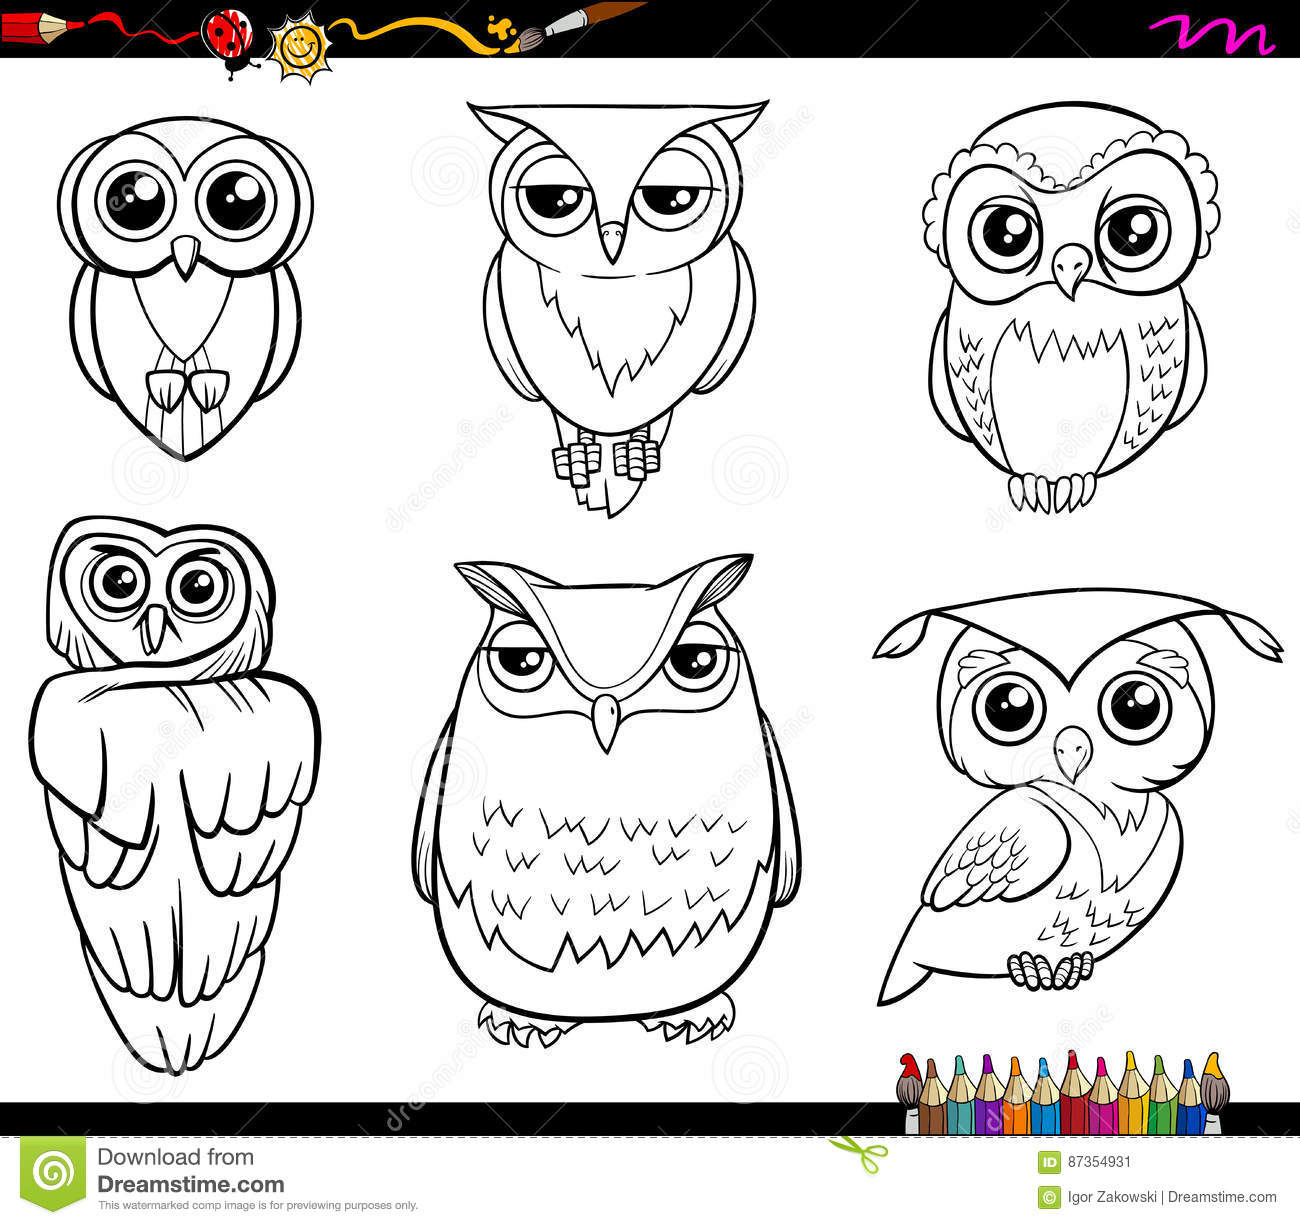 owl characters coloring page black white cartoon illustration birds animal set